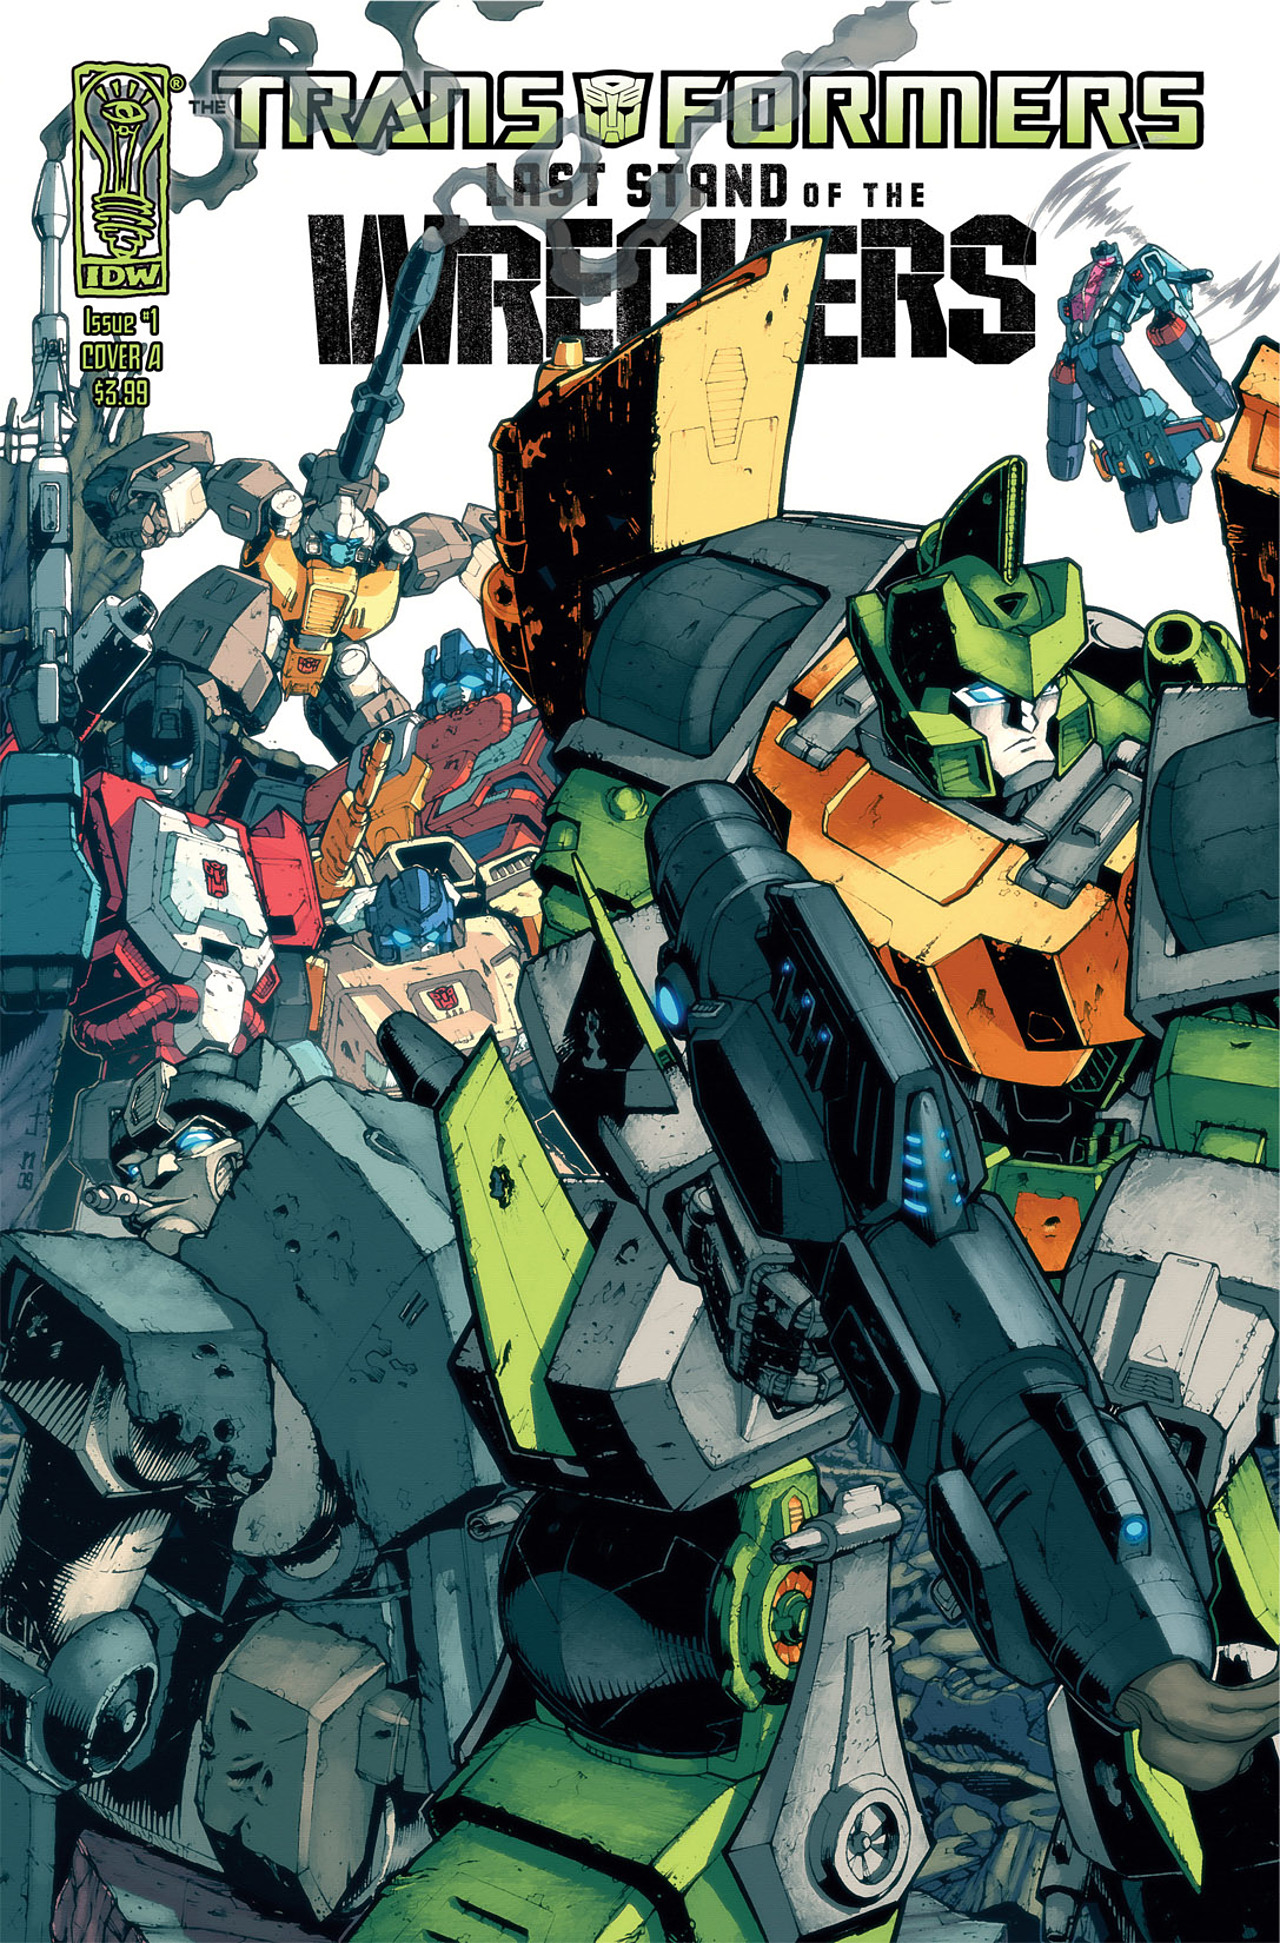 Read online Transformers: Last Stand of The Wreckers comic -  Issue #1 - 5